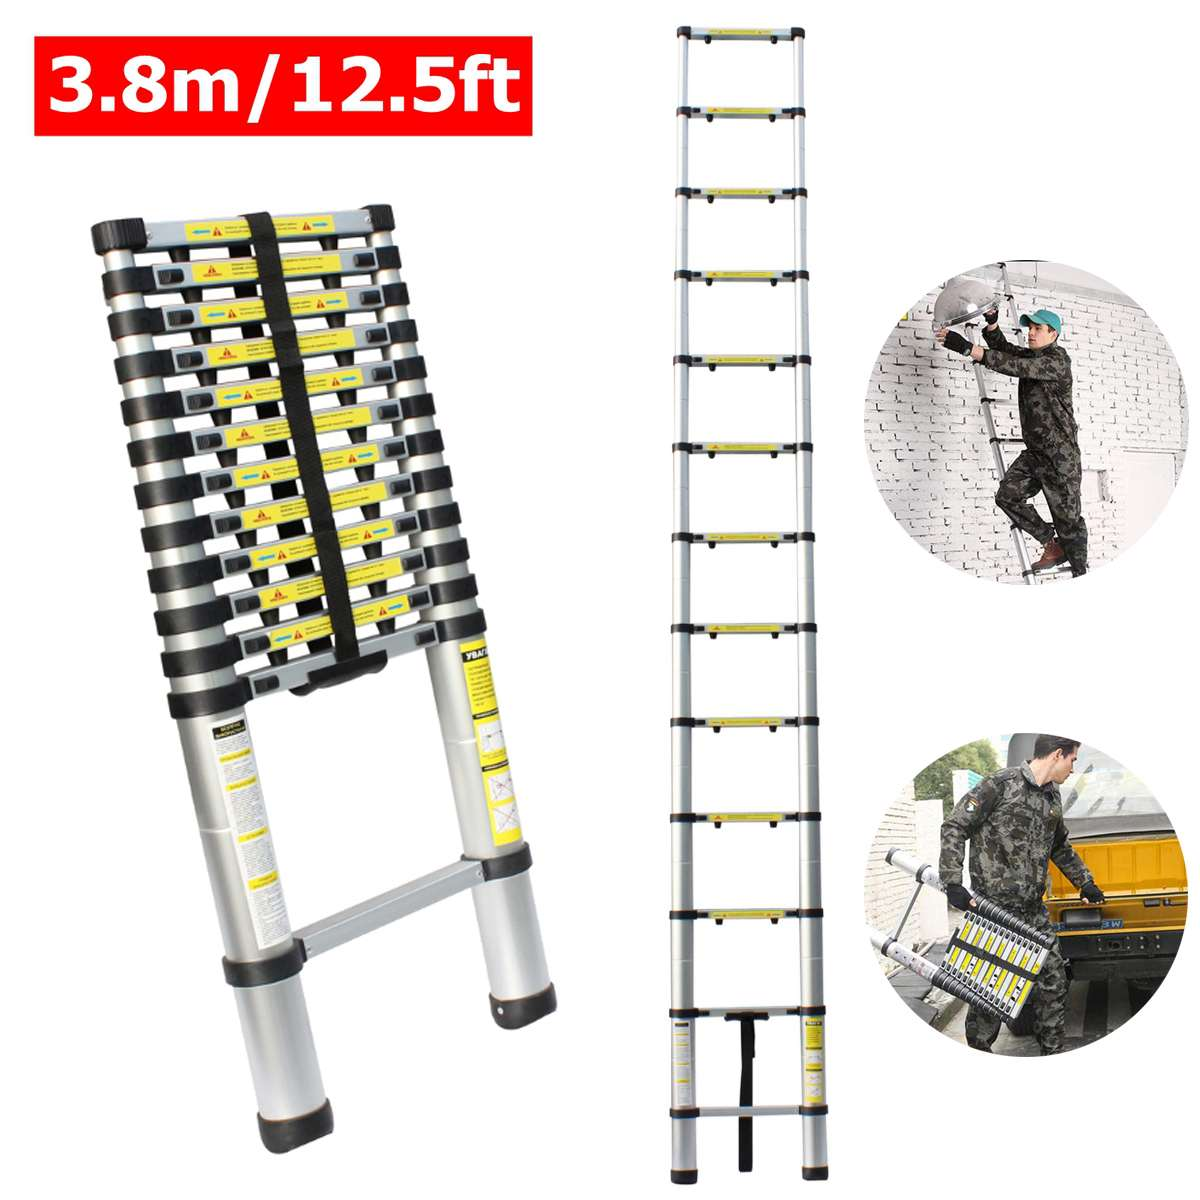 3.8m12.5ft Aluminum Multi-Purpose Extention Ladder Telescopic Stepladders Lightweight Portable Household outdoor 330lbs